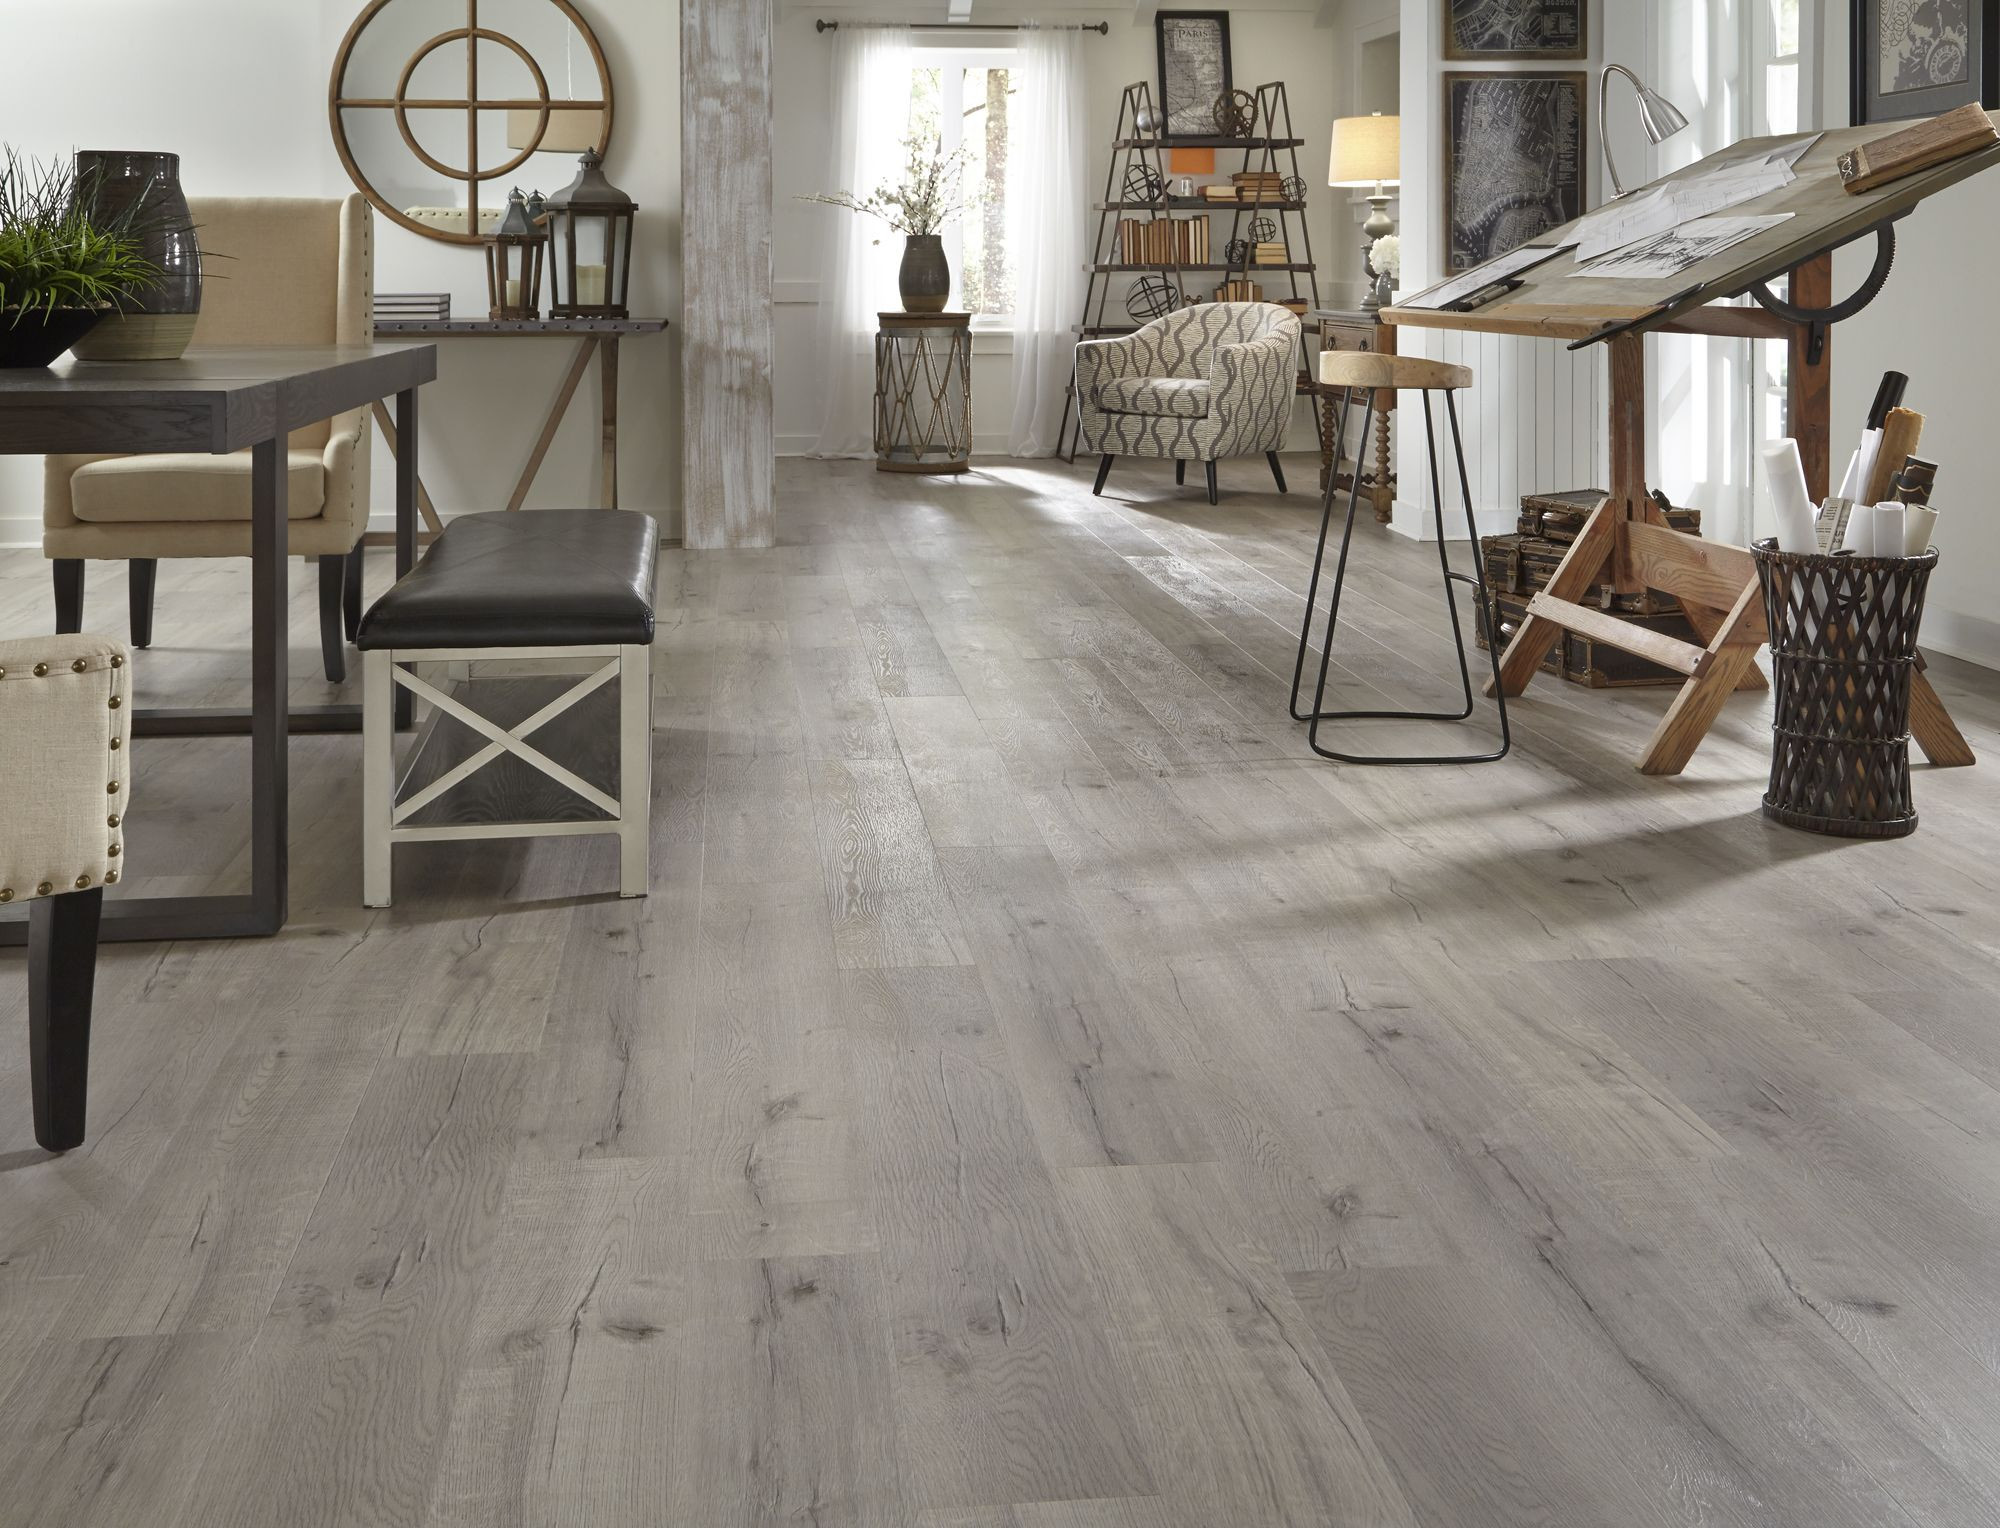 hickory saddle hardwood flooring lowes of this fall flooring season see 100 new flooring styles like driftwood inside this fall flooring season see 100 new flooring styles like driftwood hickory evp its part of a new line of waterproof flooring thats ideal for any space